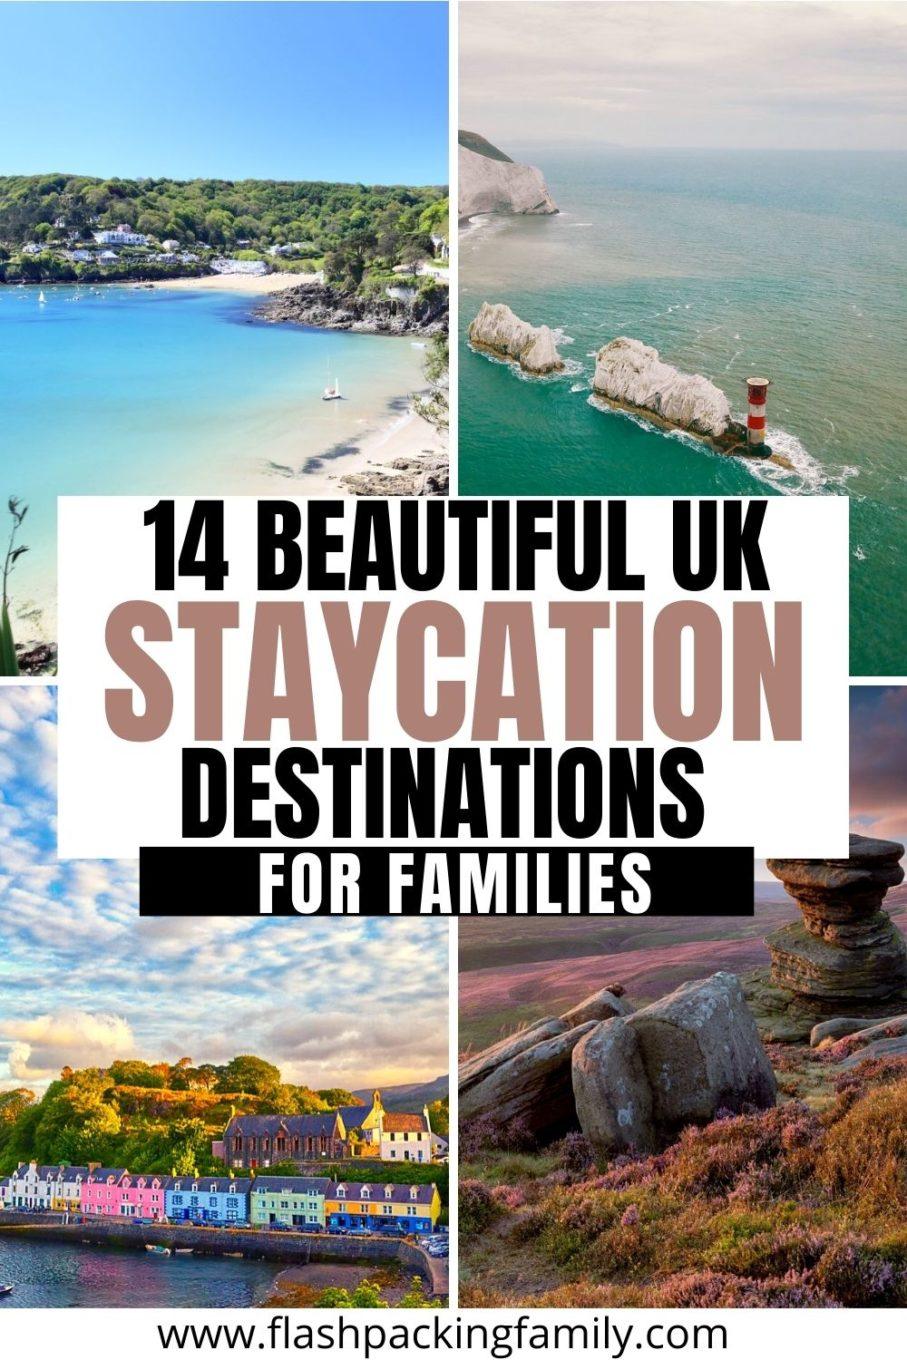 14 Beautiful UK Staycation Destinations for Families.